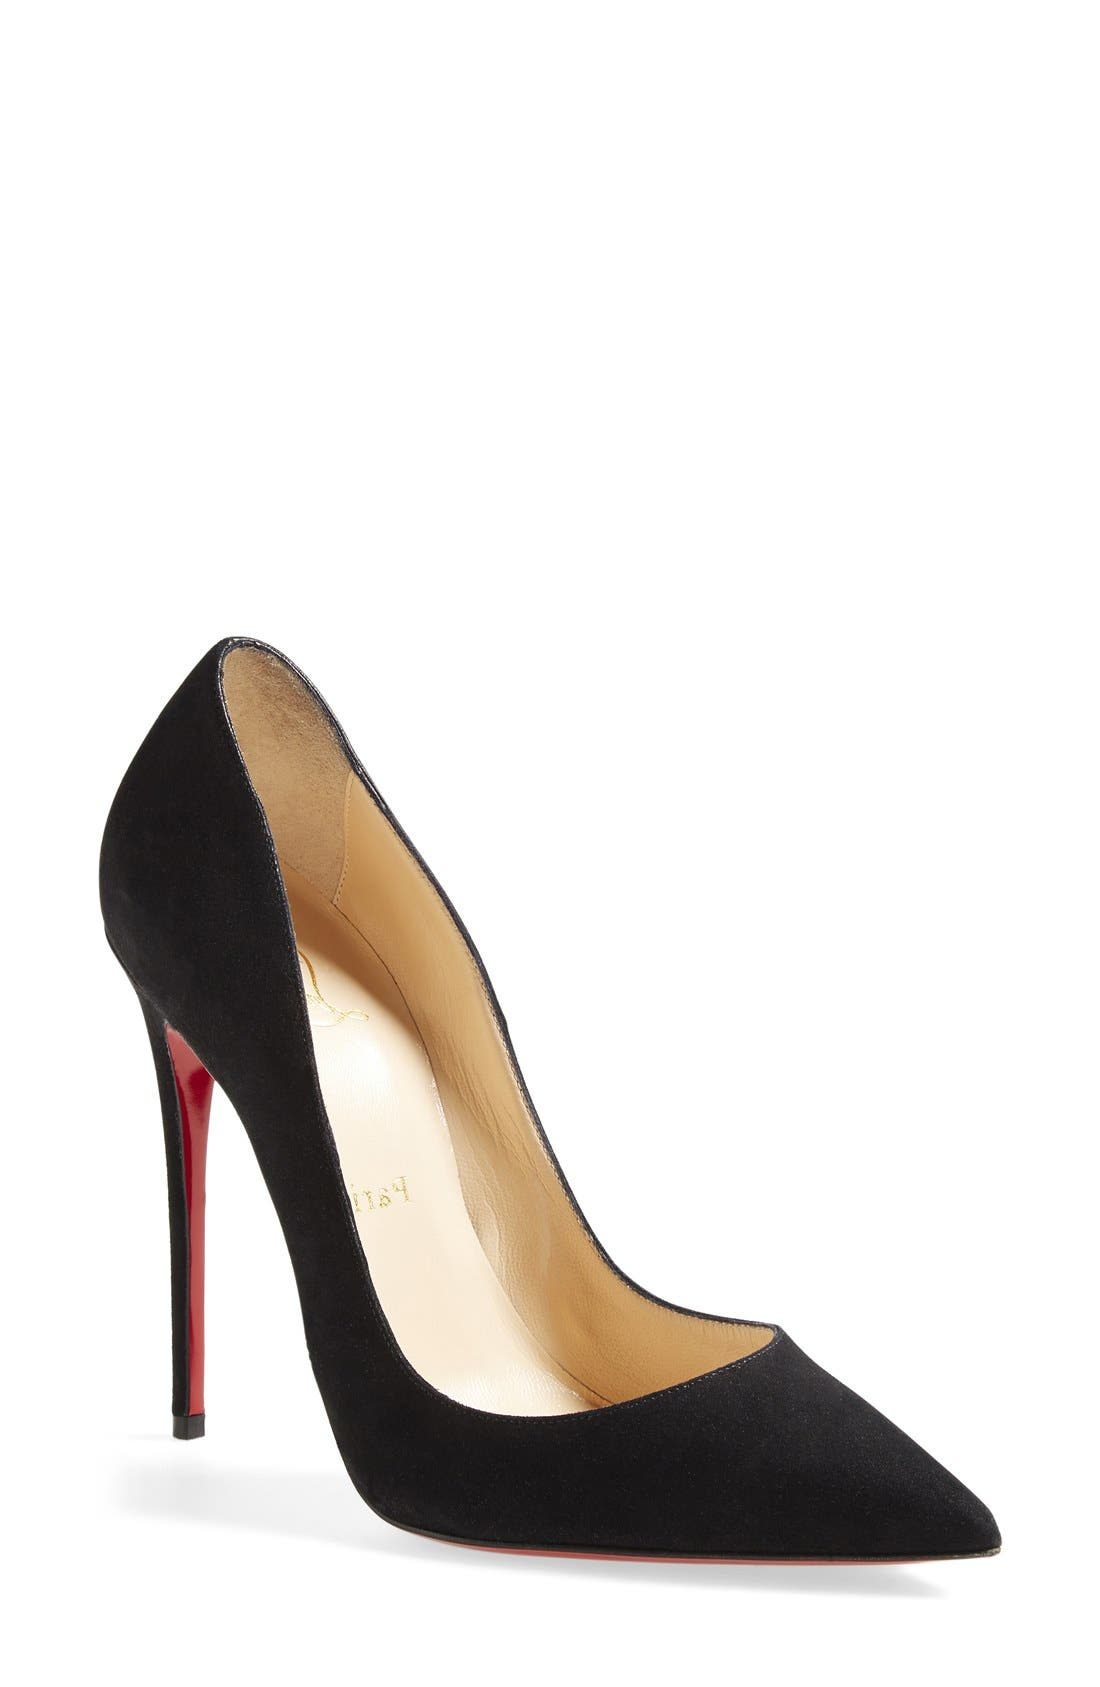 CHRISTIAN LOUBOUTIN 'So Kate' Pointy Toe Suede Pump, Main, color, 001